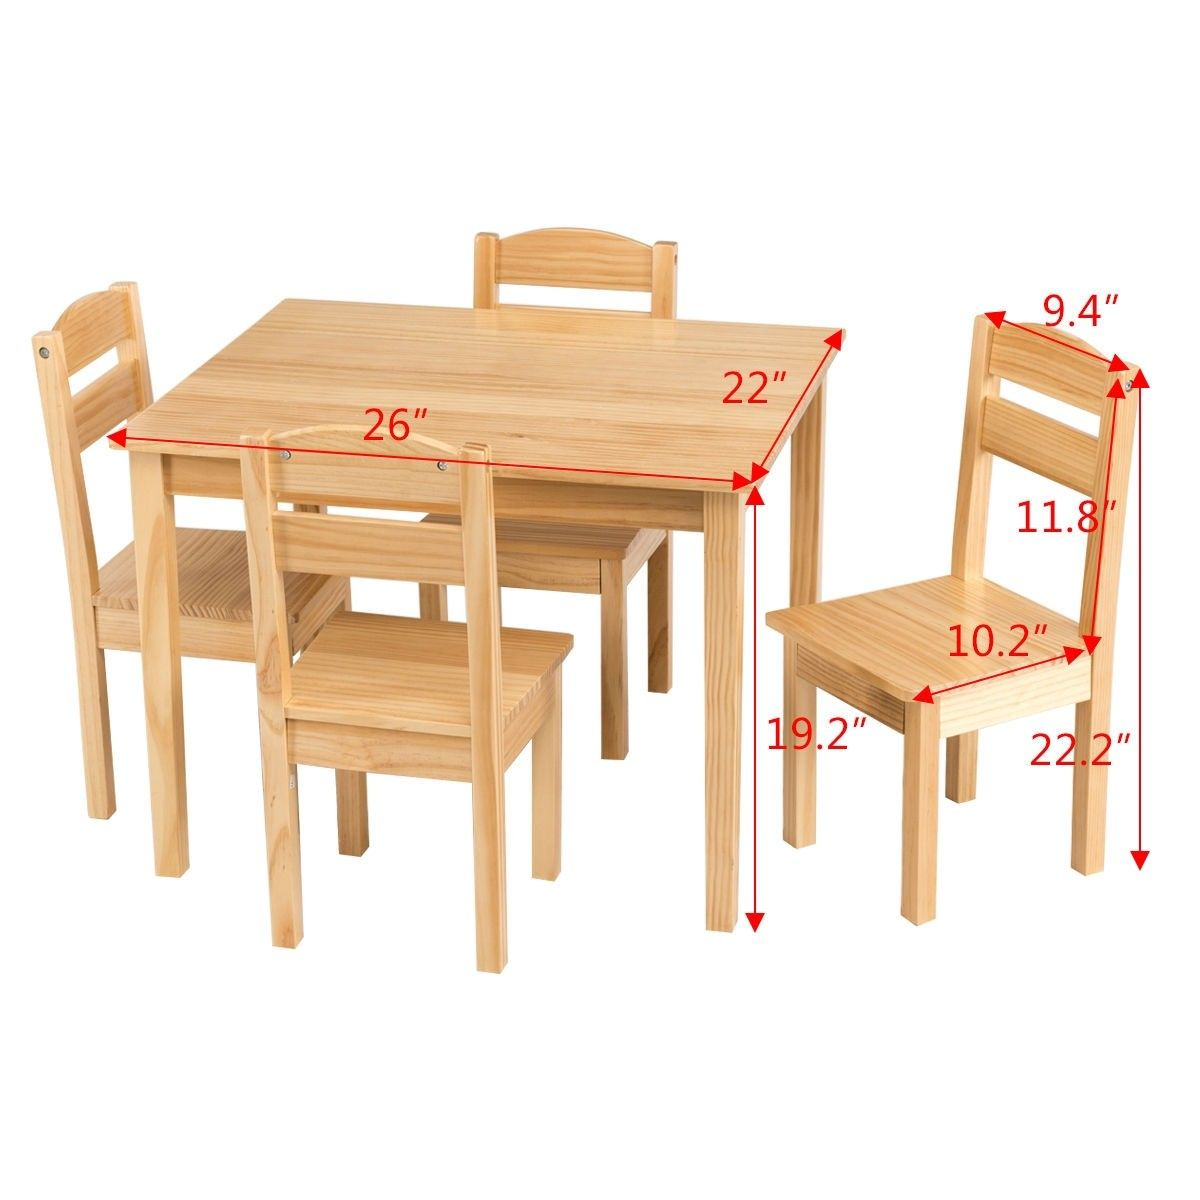 Kids 5 Piece Play Room Table And Chair Set Wooden Activity Kids